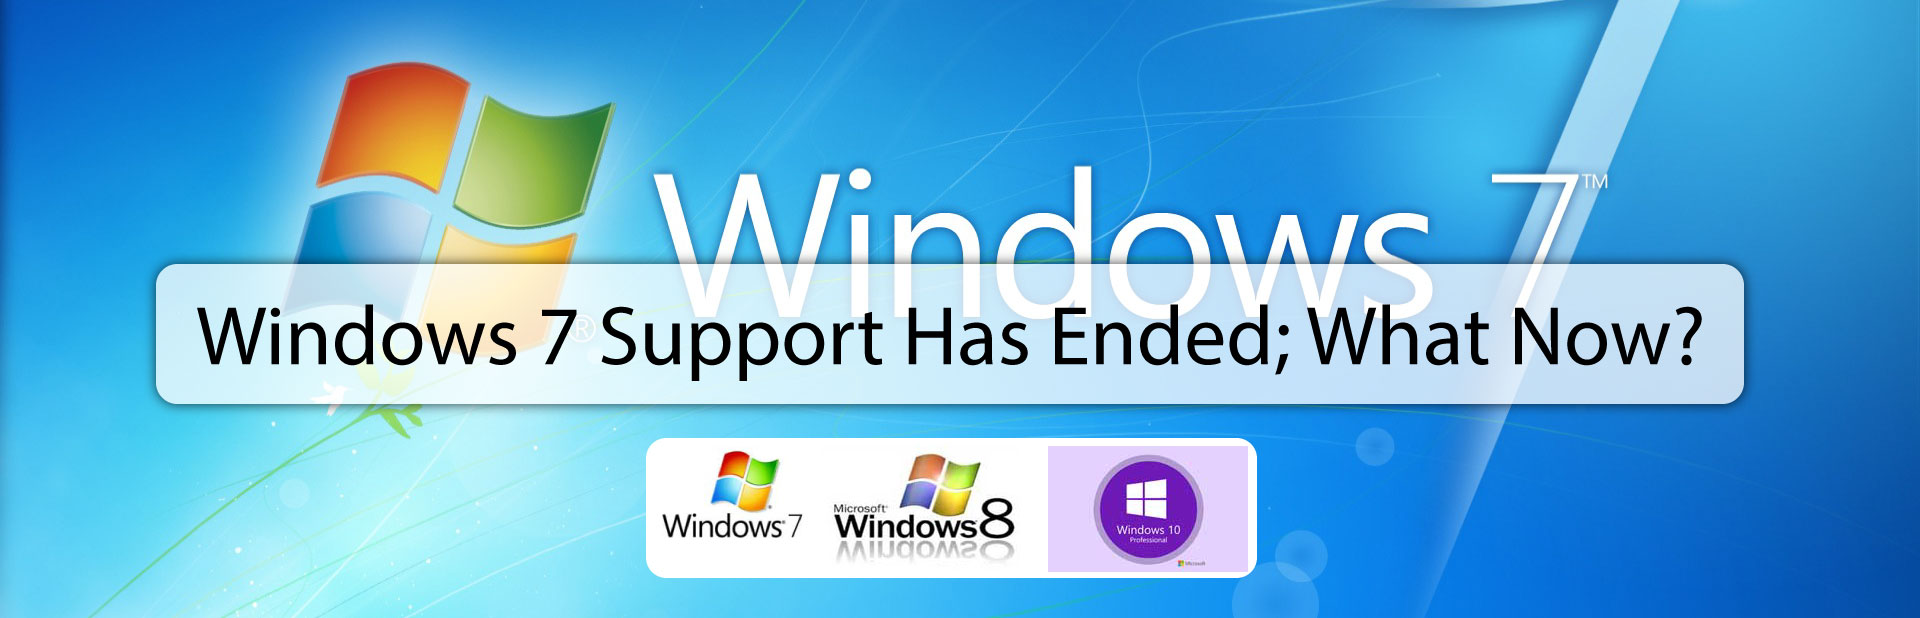 Windows 7 support has ended; what now?